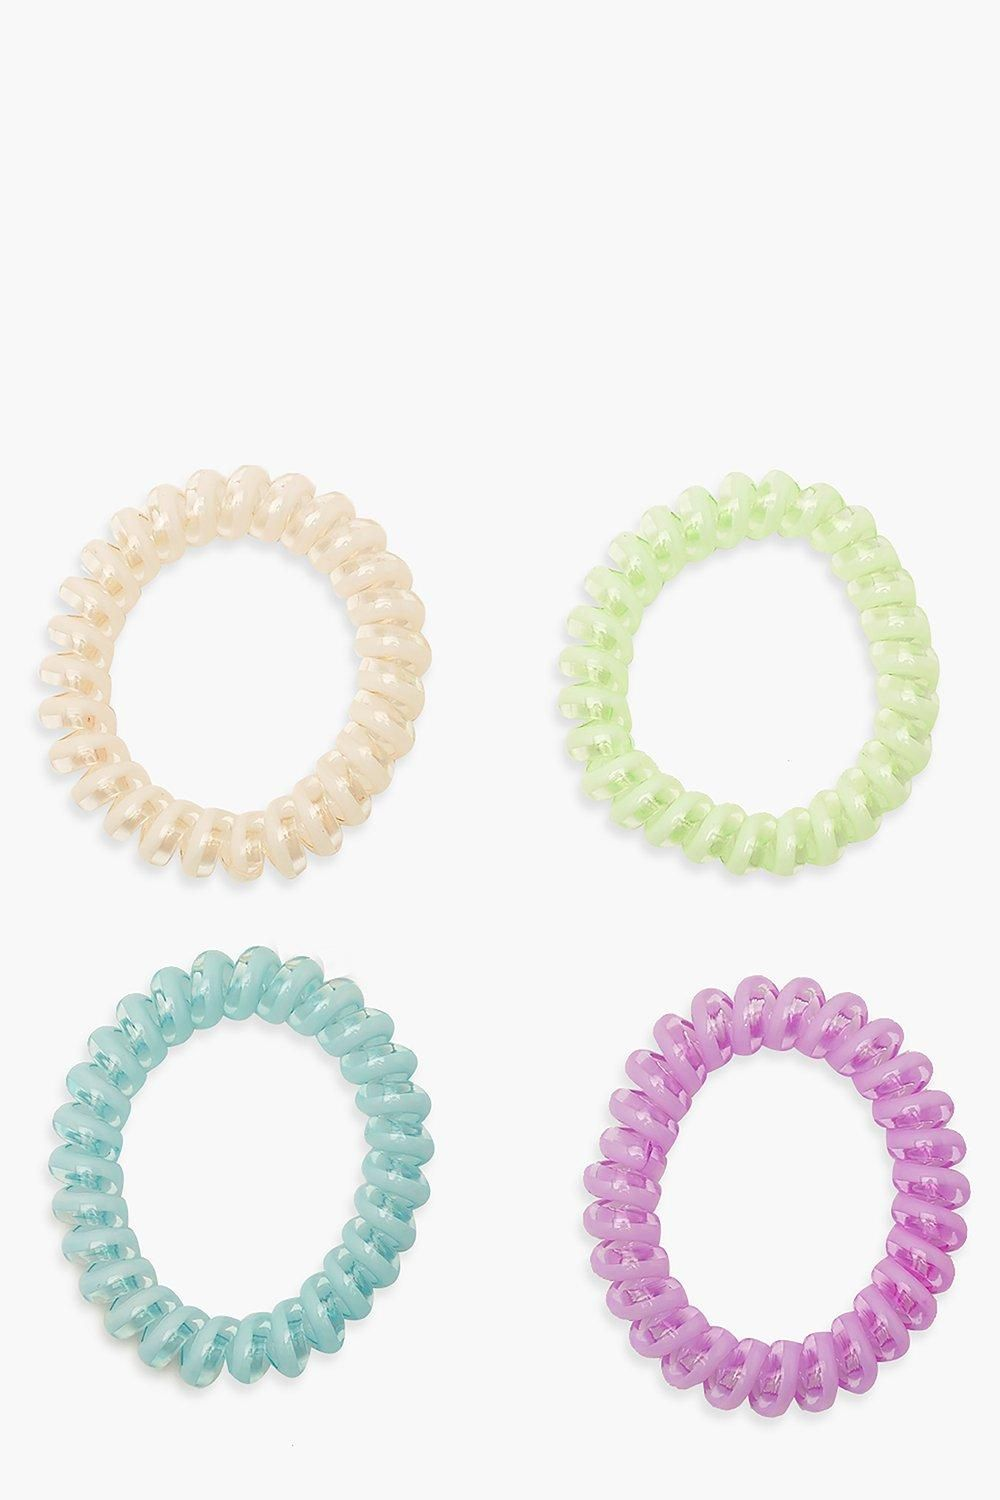 Pastel Coil Elastic Hair Band Bobble 4 Pack #AFF, , #AFFILIATE, #AFF, #Elastic, #Hair, #Pack, #Coil